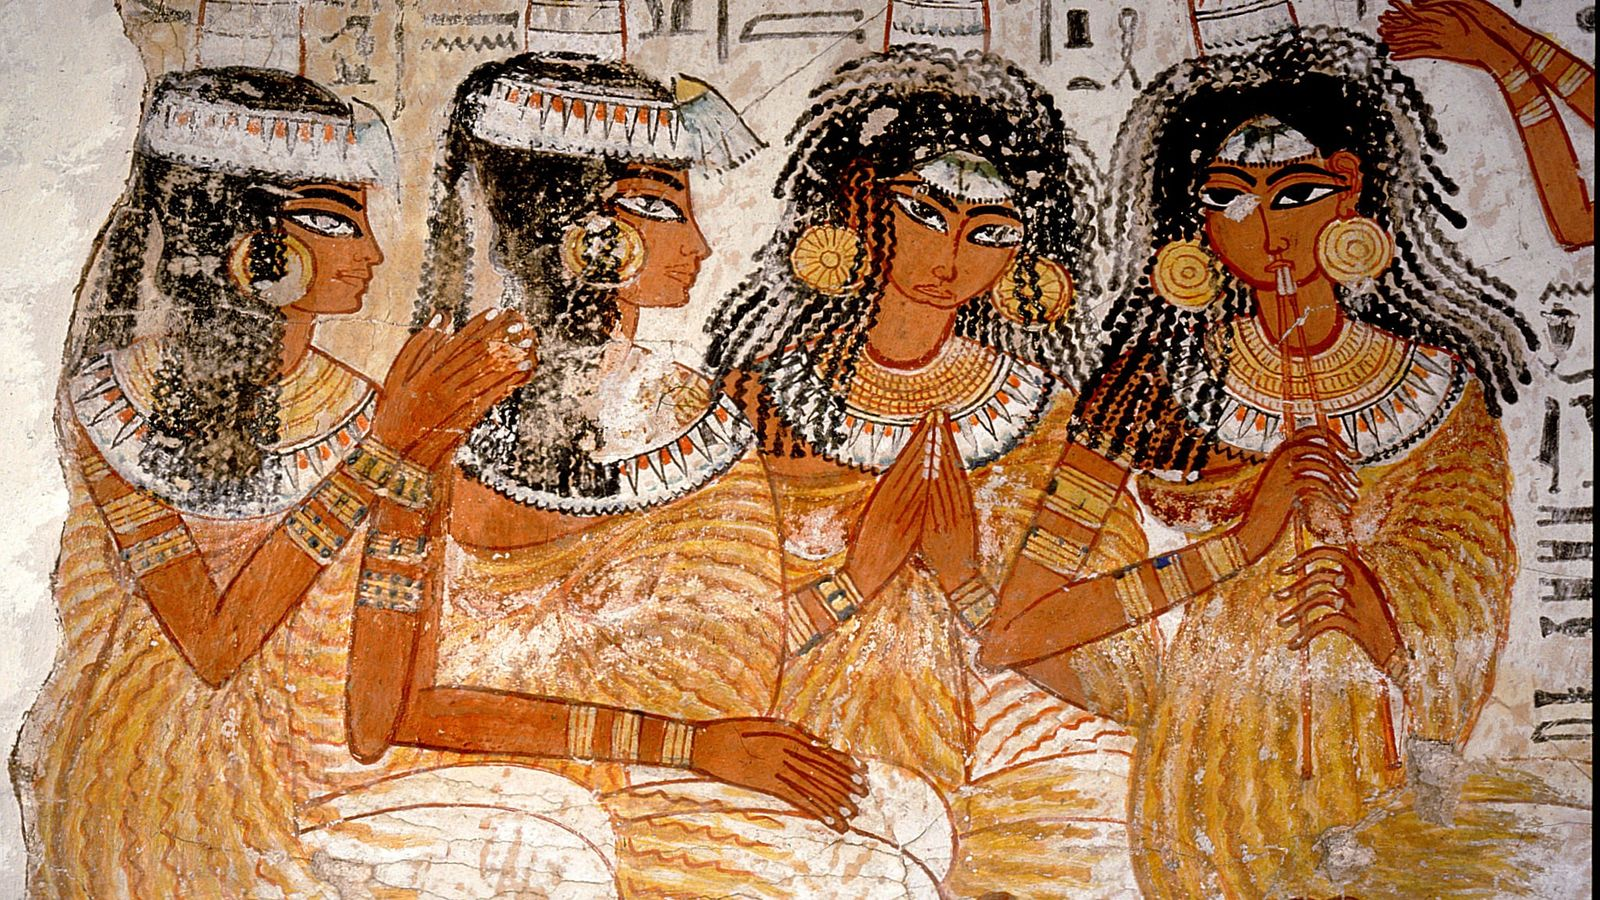 Women in a 3,300-year-old banquet scene are decpicted wearing cone-shaped objects atop their heads. Such depictions ...